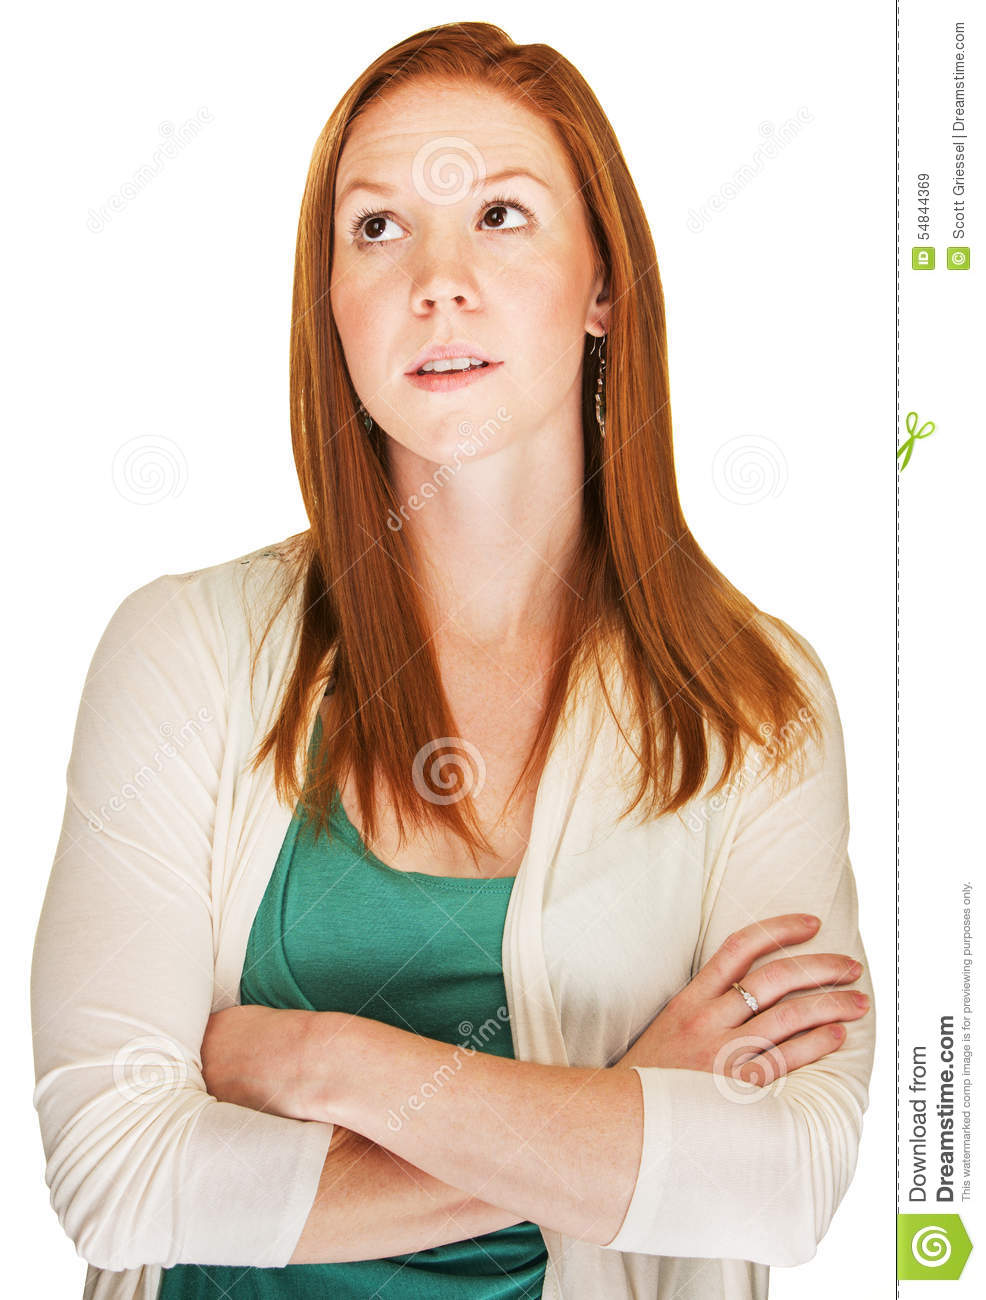 Snob With Arms Folded Stock Image Image Of Daydreaming